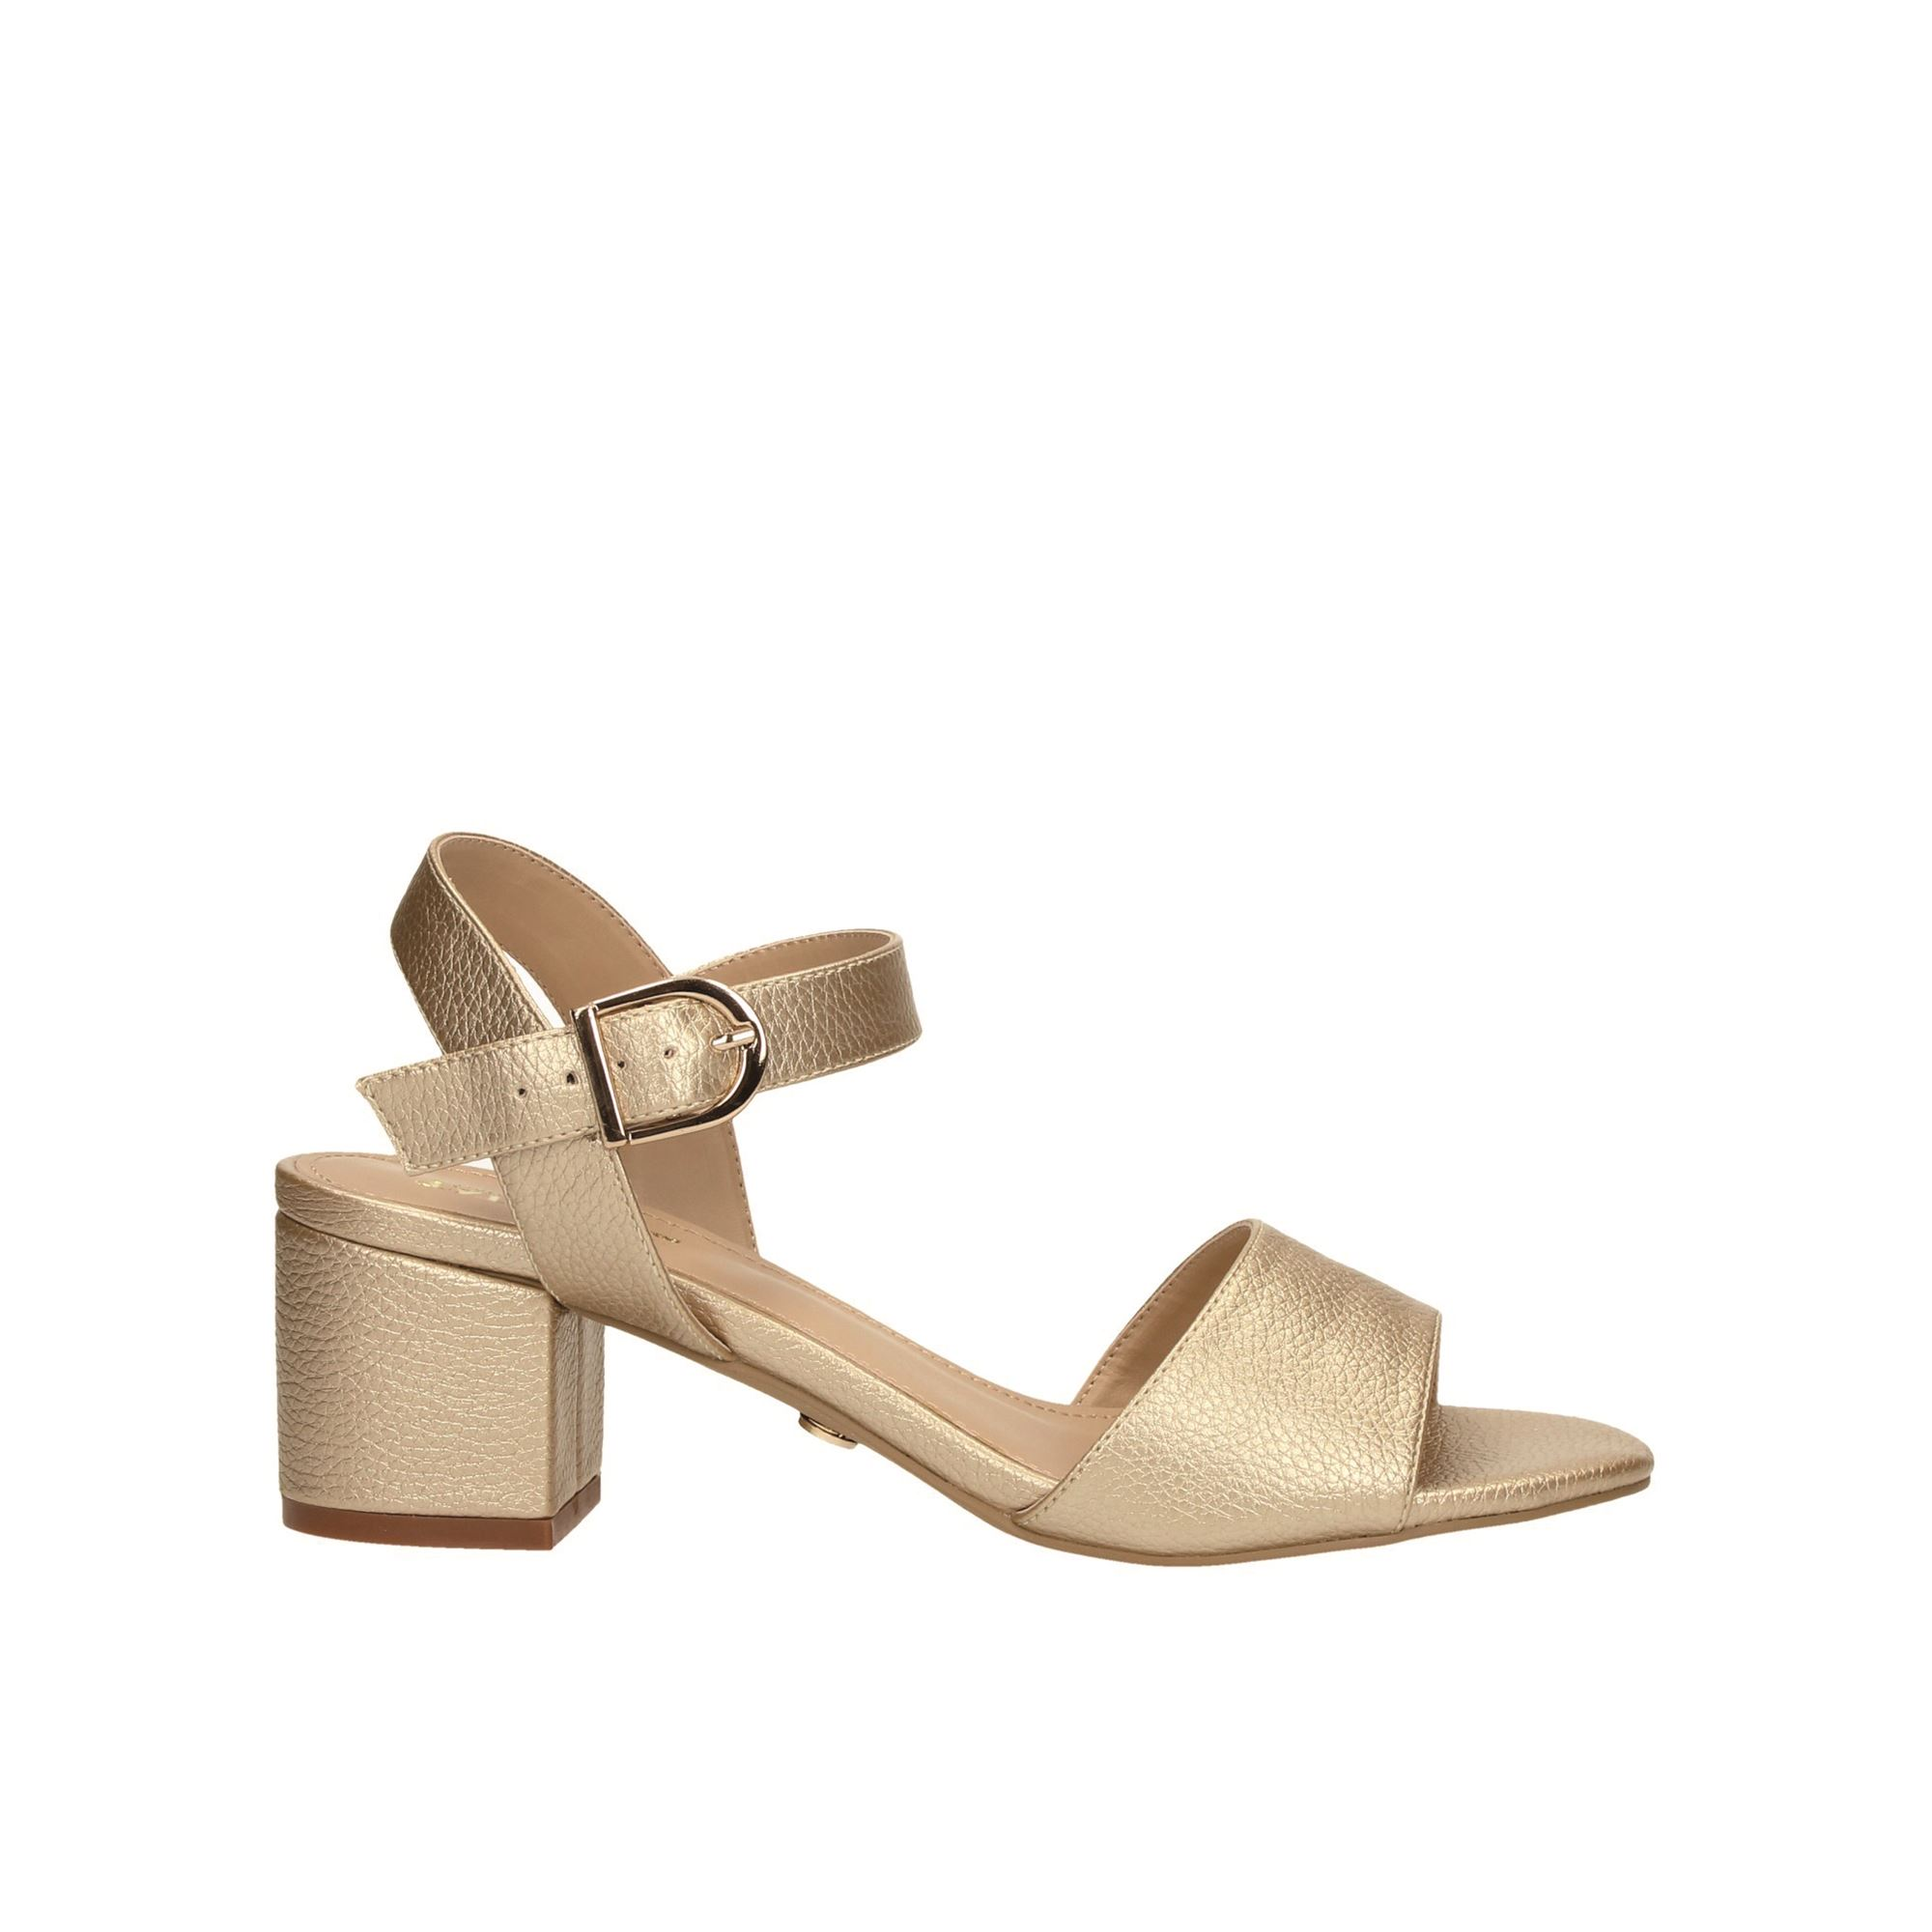 Tata Italia Shoes Woman Sandali Gold 9146L-25